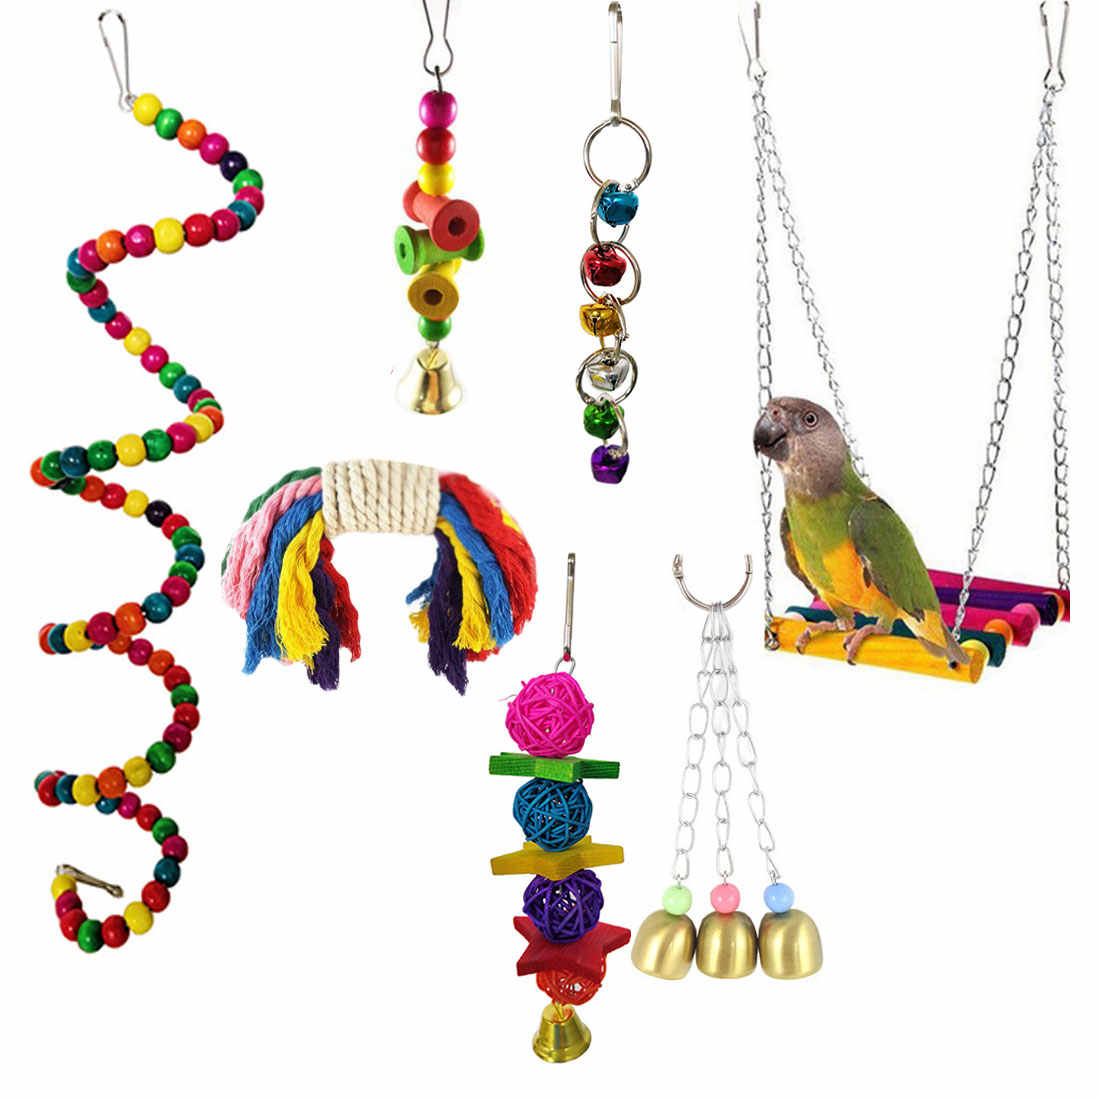 7pcs/Set Pet Budgie Cockatiel Cage Hammock Swing Toys Kit Wooden Bead Bird Parrots Toys Chewing Hanging Bell